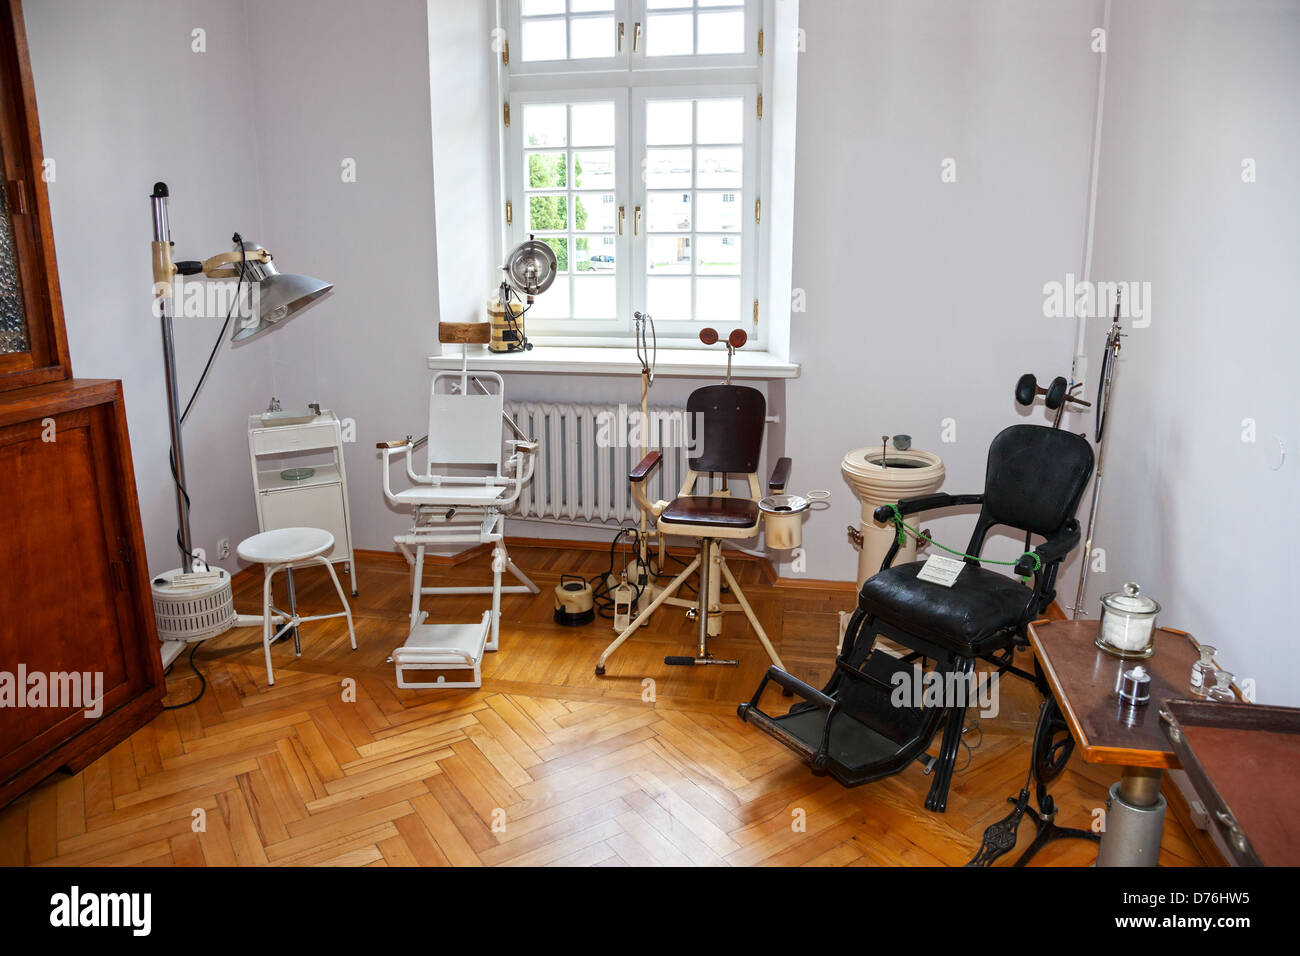 Vintage dentist chair and equipment of the last century. - Stock Image